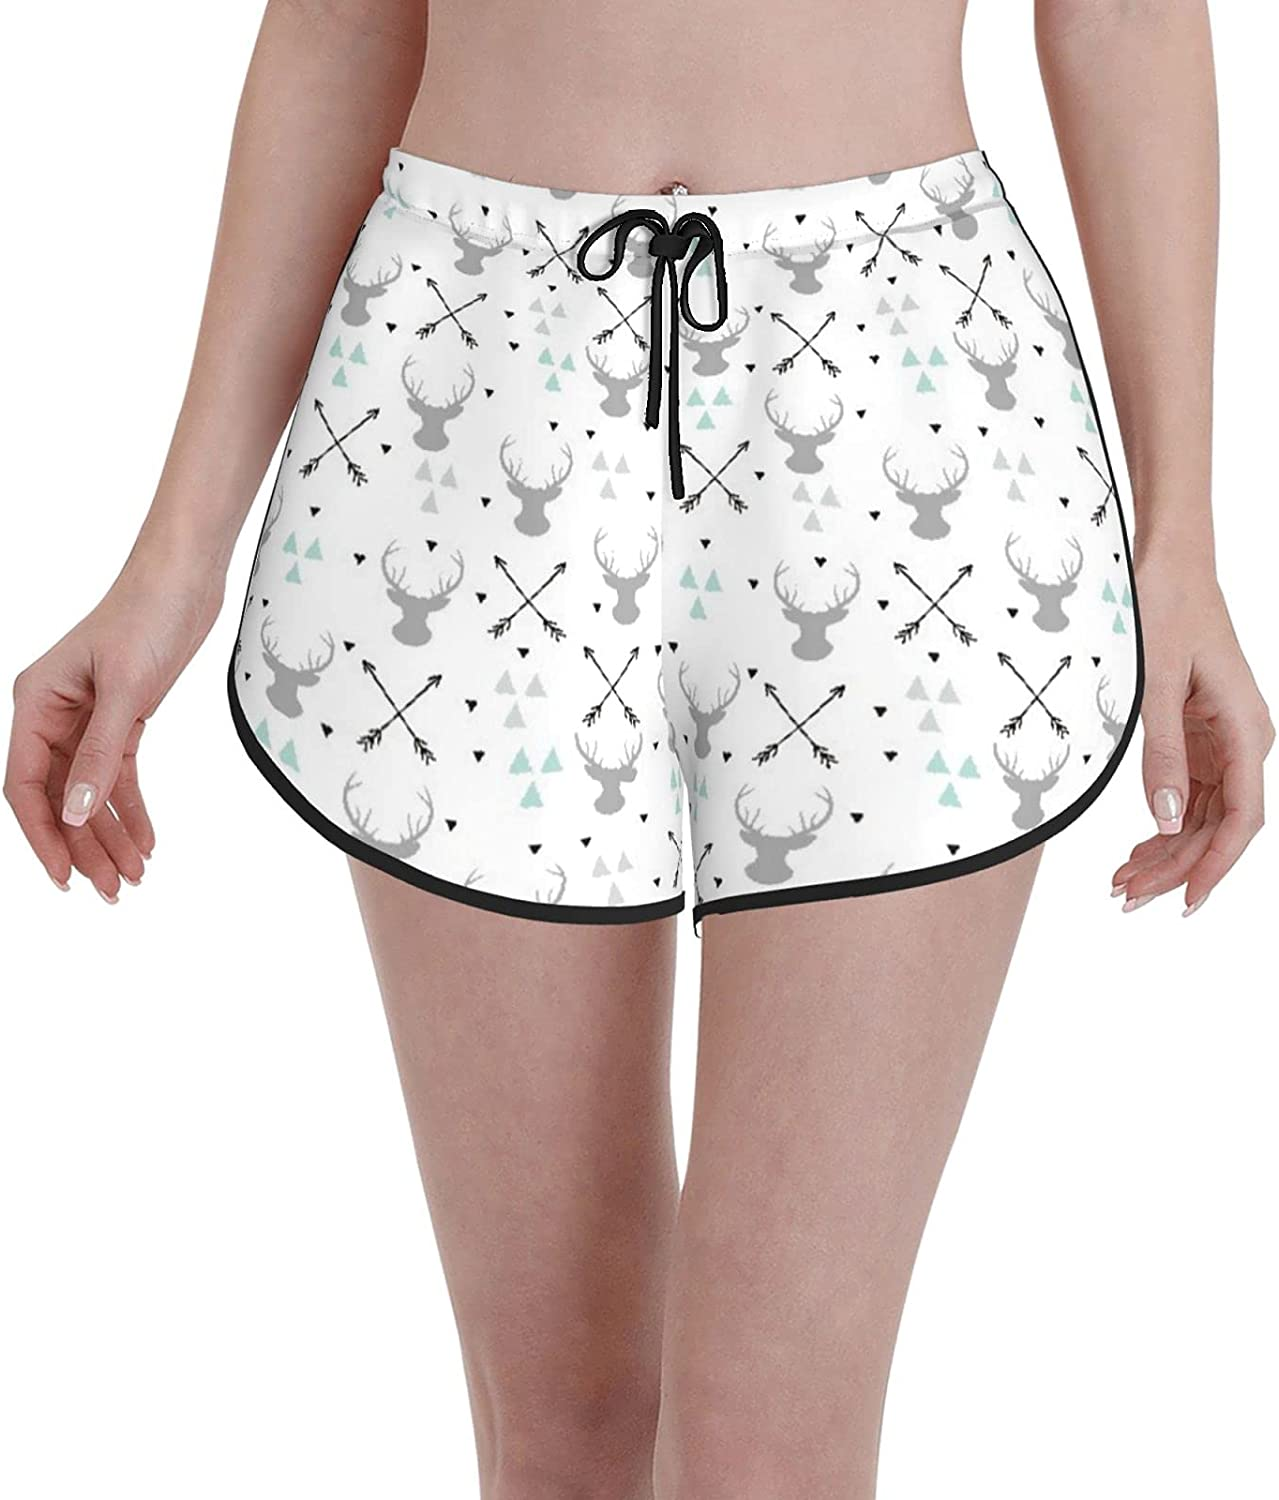 Women's Limited time trial price Girl's Swim Manufacturer direct delivery Trunks Hunting Triangle Arrow Theme Dee